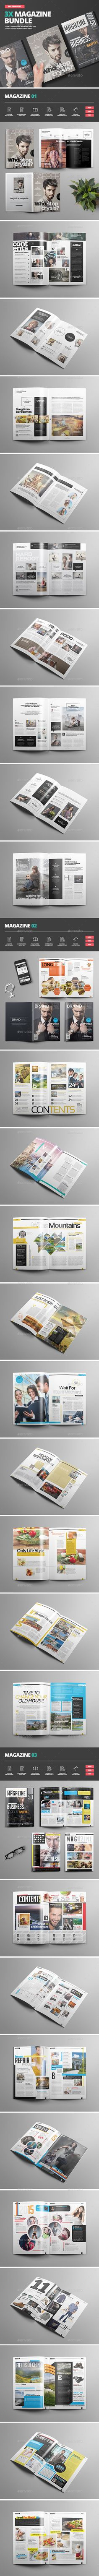 Magazine Bundle by -BeCreative- Magazine Bundle: Professional and clean InDesign magazine templates. Includes 5 covers and 78 pages for articles, interviews, gall Brand Magazine, Cool Magazine, Magazine Design, Magazine Cover Page, Cover Page Template, Indesign Magazine Templates, Cover Pages, Print Templates, Page Design